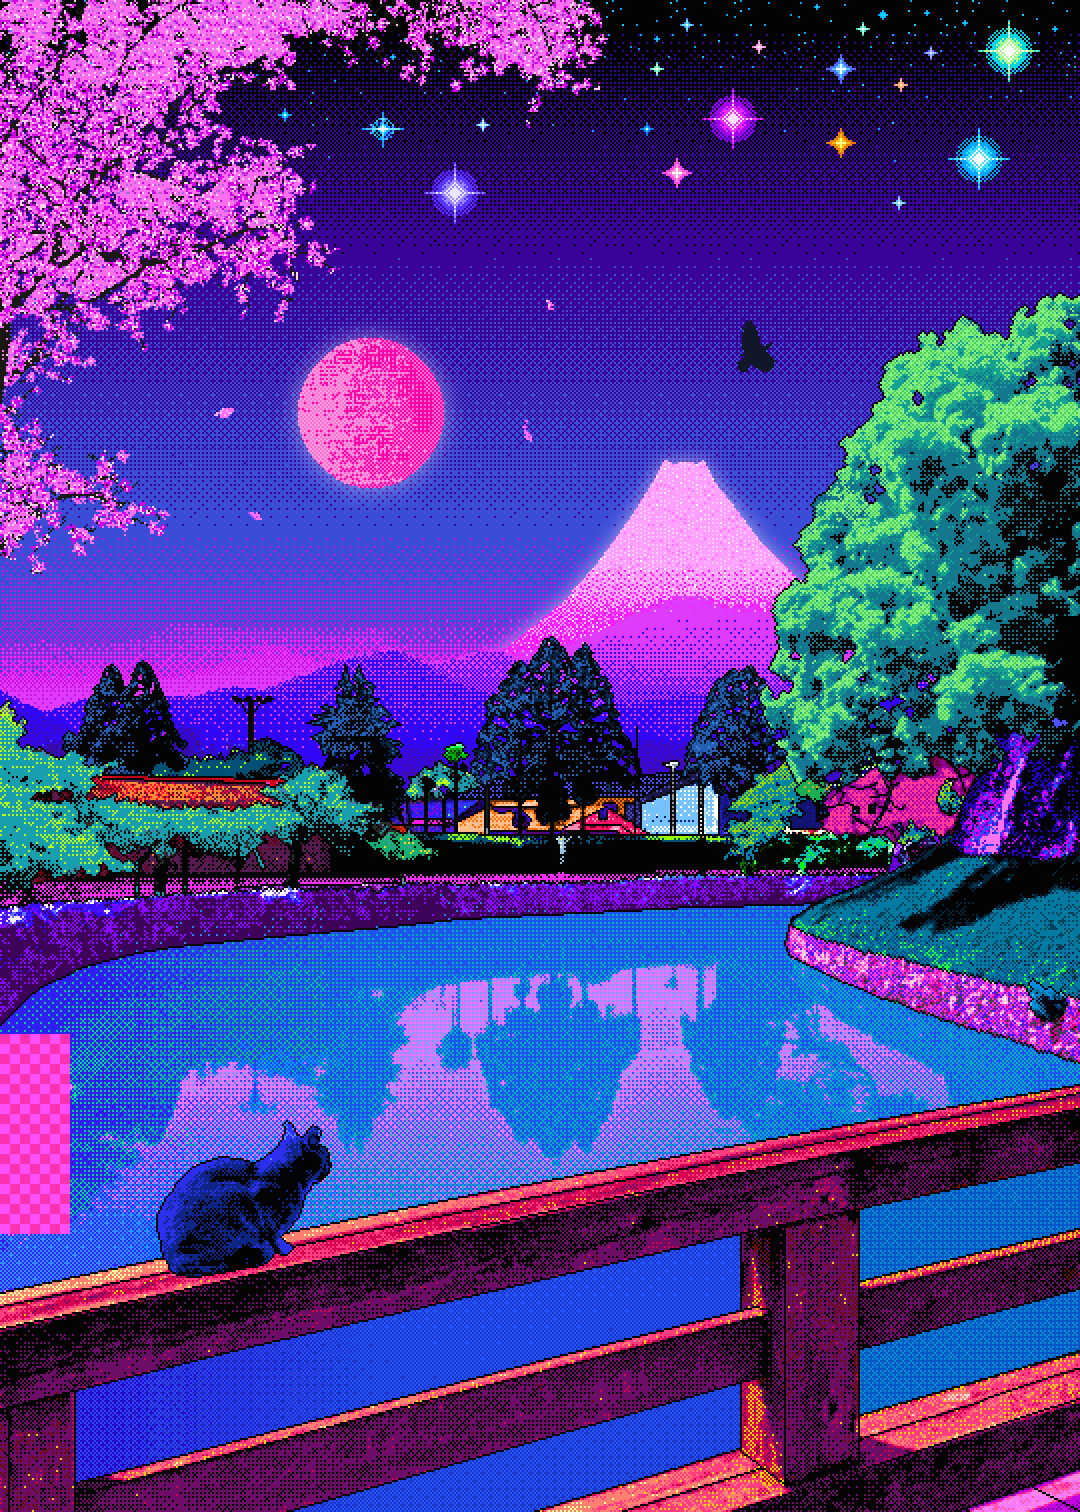 video garden | aesthetic | Vaporwave art, Art, Aesthetic art